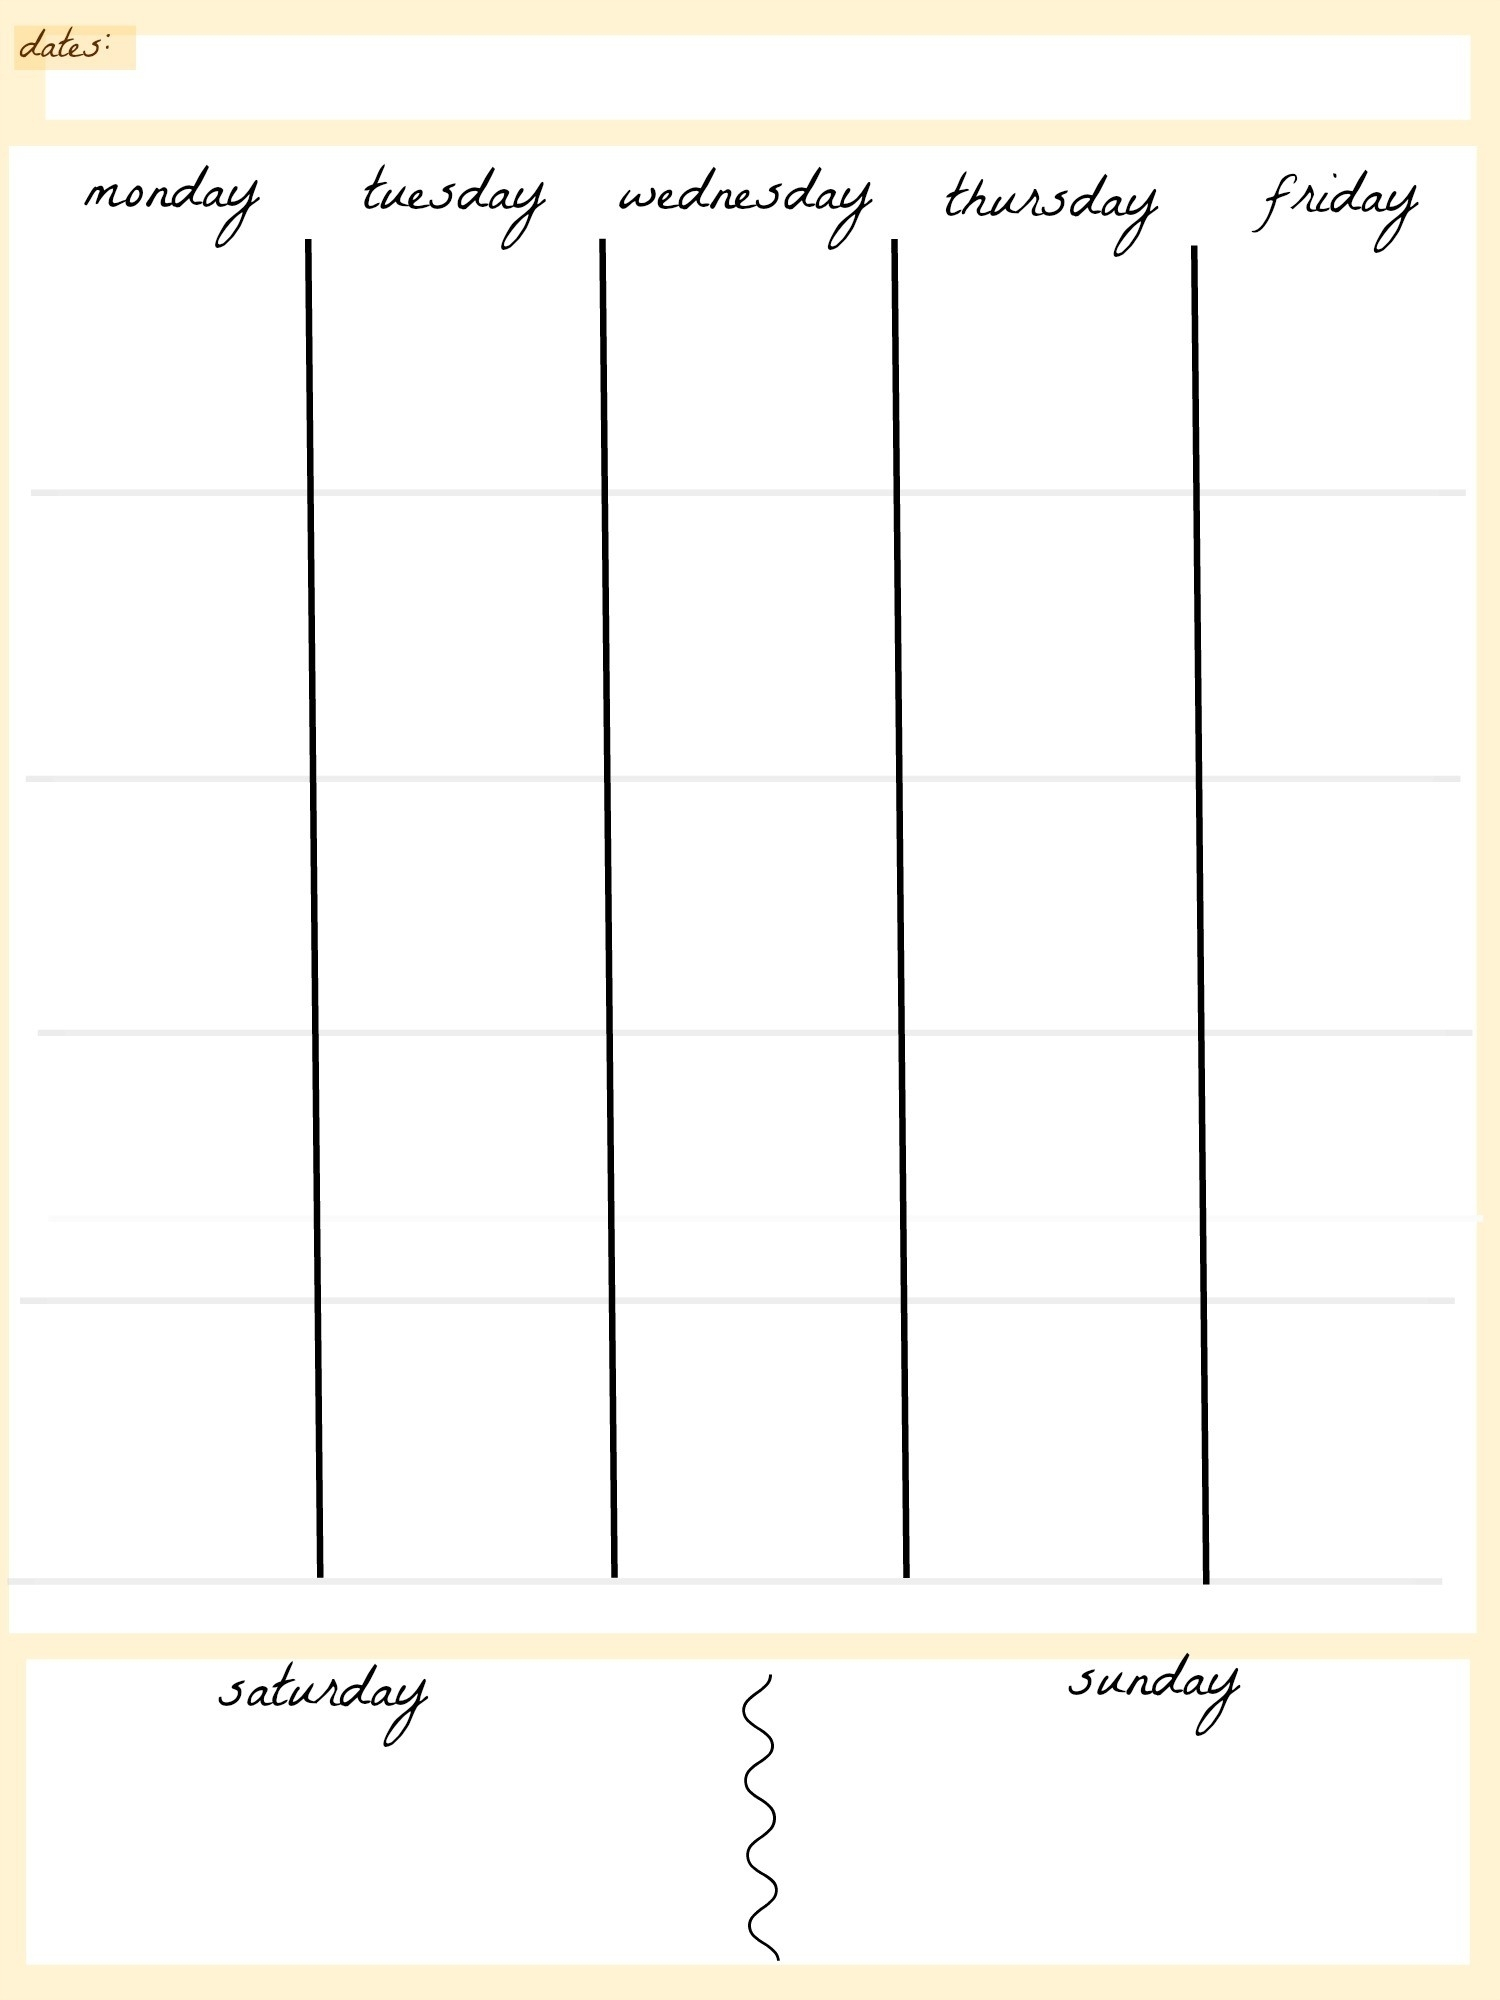 Blank Calendar Template 5 Day Week Weekly Calendar 5 Day Travel Cal1 for Printable 5 Day Working Week Calendar